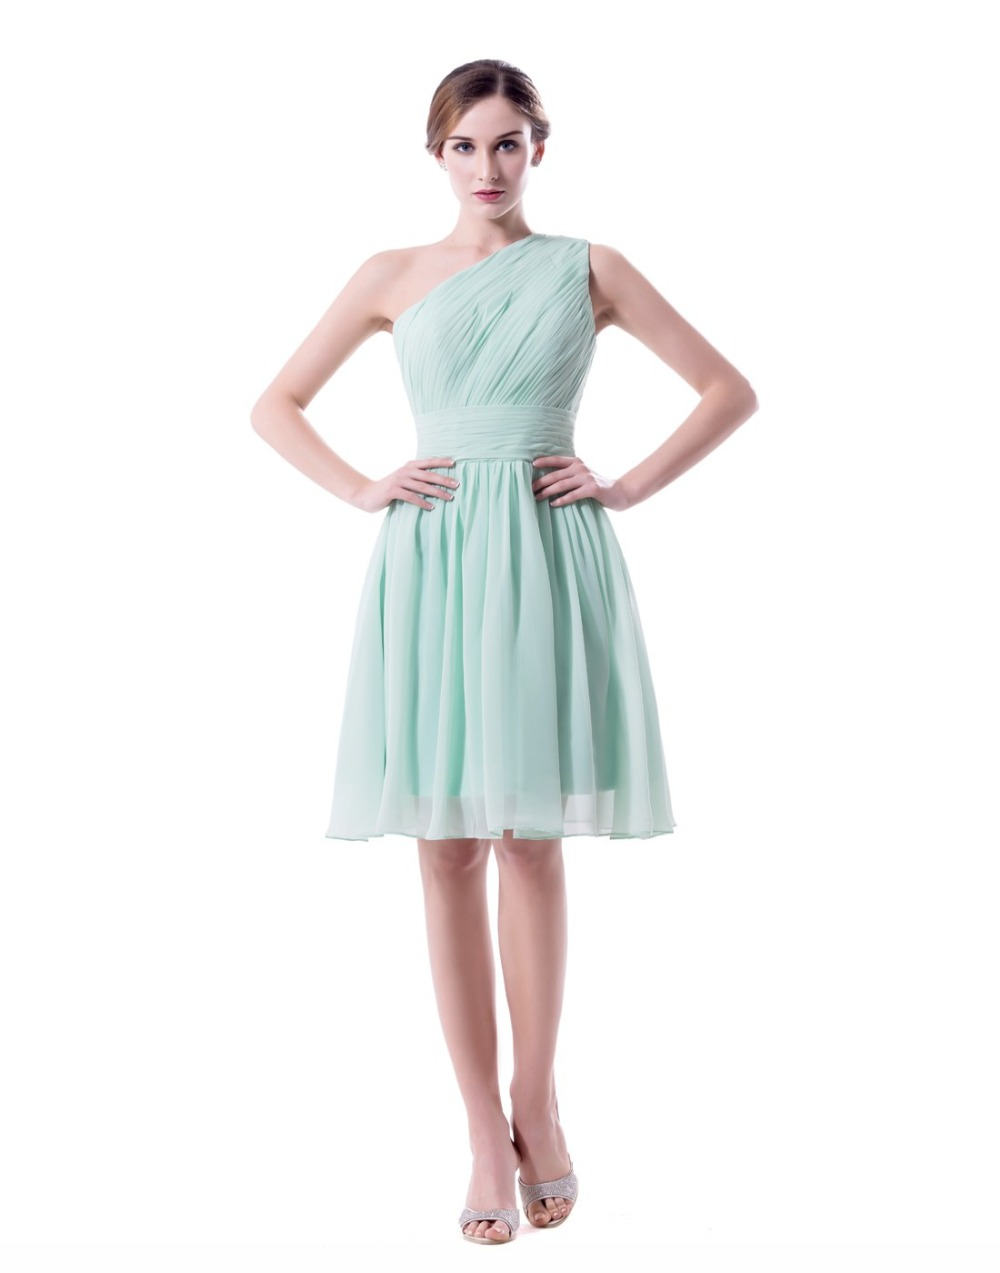 Sage mint green short bridesmaid dresses one shoulder plus size sage mint green short bridesmaid dresses one shoulder plus size 2017 chiffon wedding party dresses maid of honor custom made in bridesmaid dresses from ombrellifo Gallery